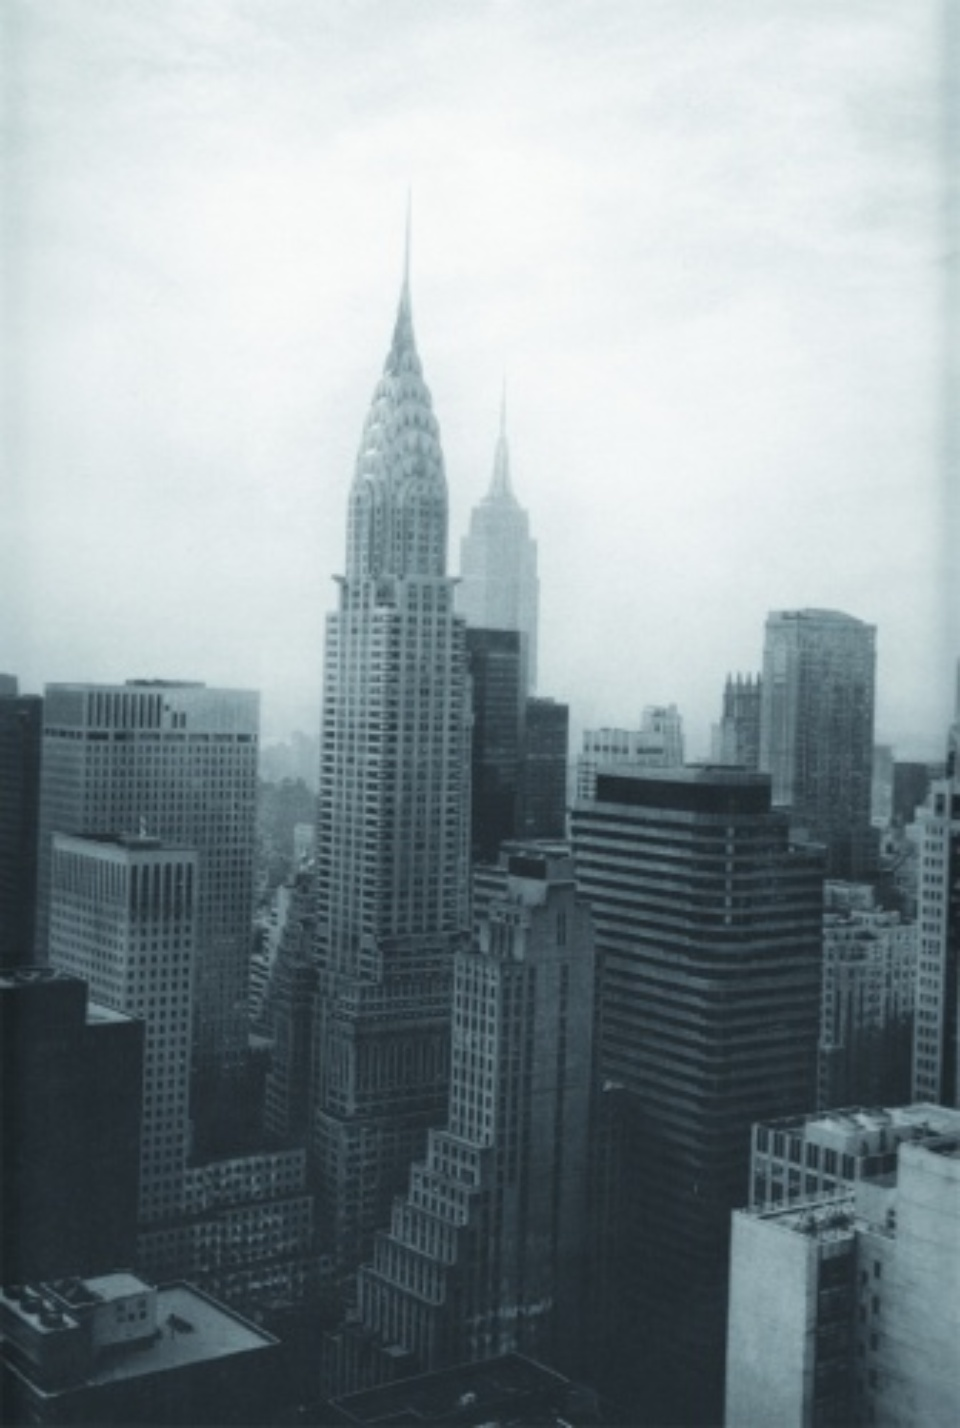 Tom Baril: New York Skyline 1995 Photogravure Signed, titled and dated 26 x 32,5 cm